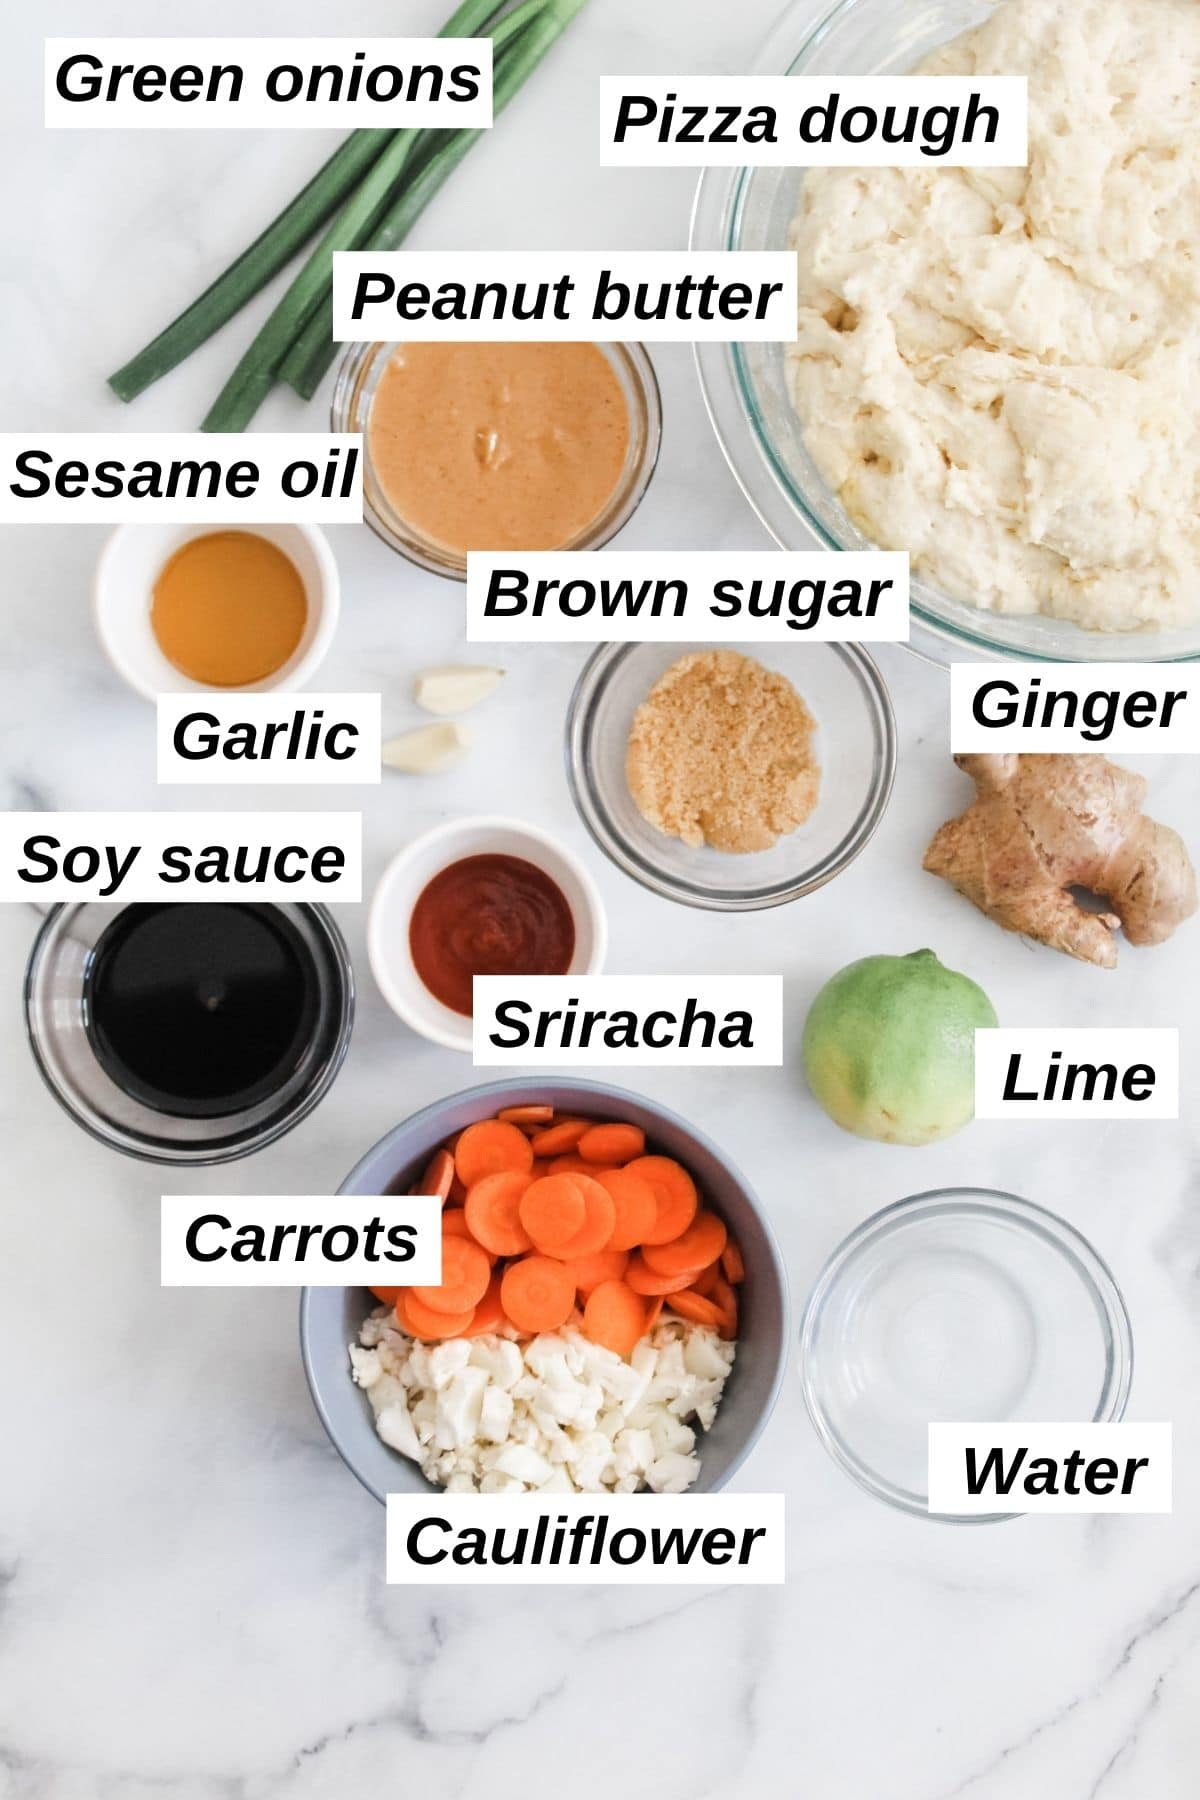 ingredients for vegan thai pizza in little bowls including peanut butter, cauliflower, sesame oil, carrots, ginger, and more